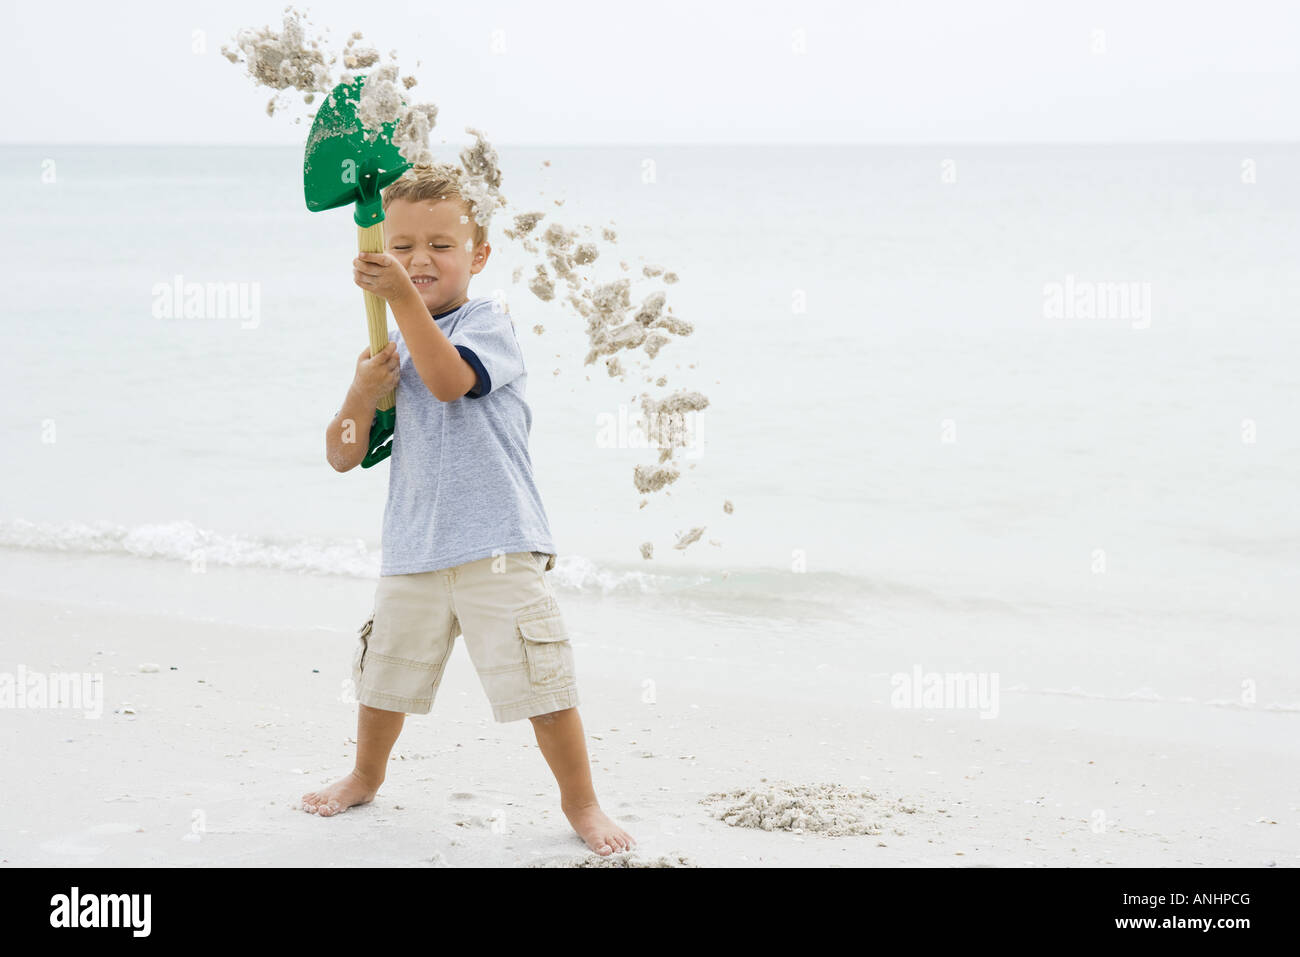 Young boy at the beach holding up shovel, throwing sand, eyes closed - Stock Image